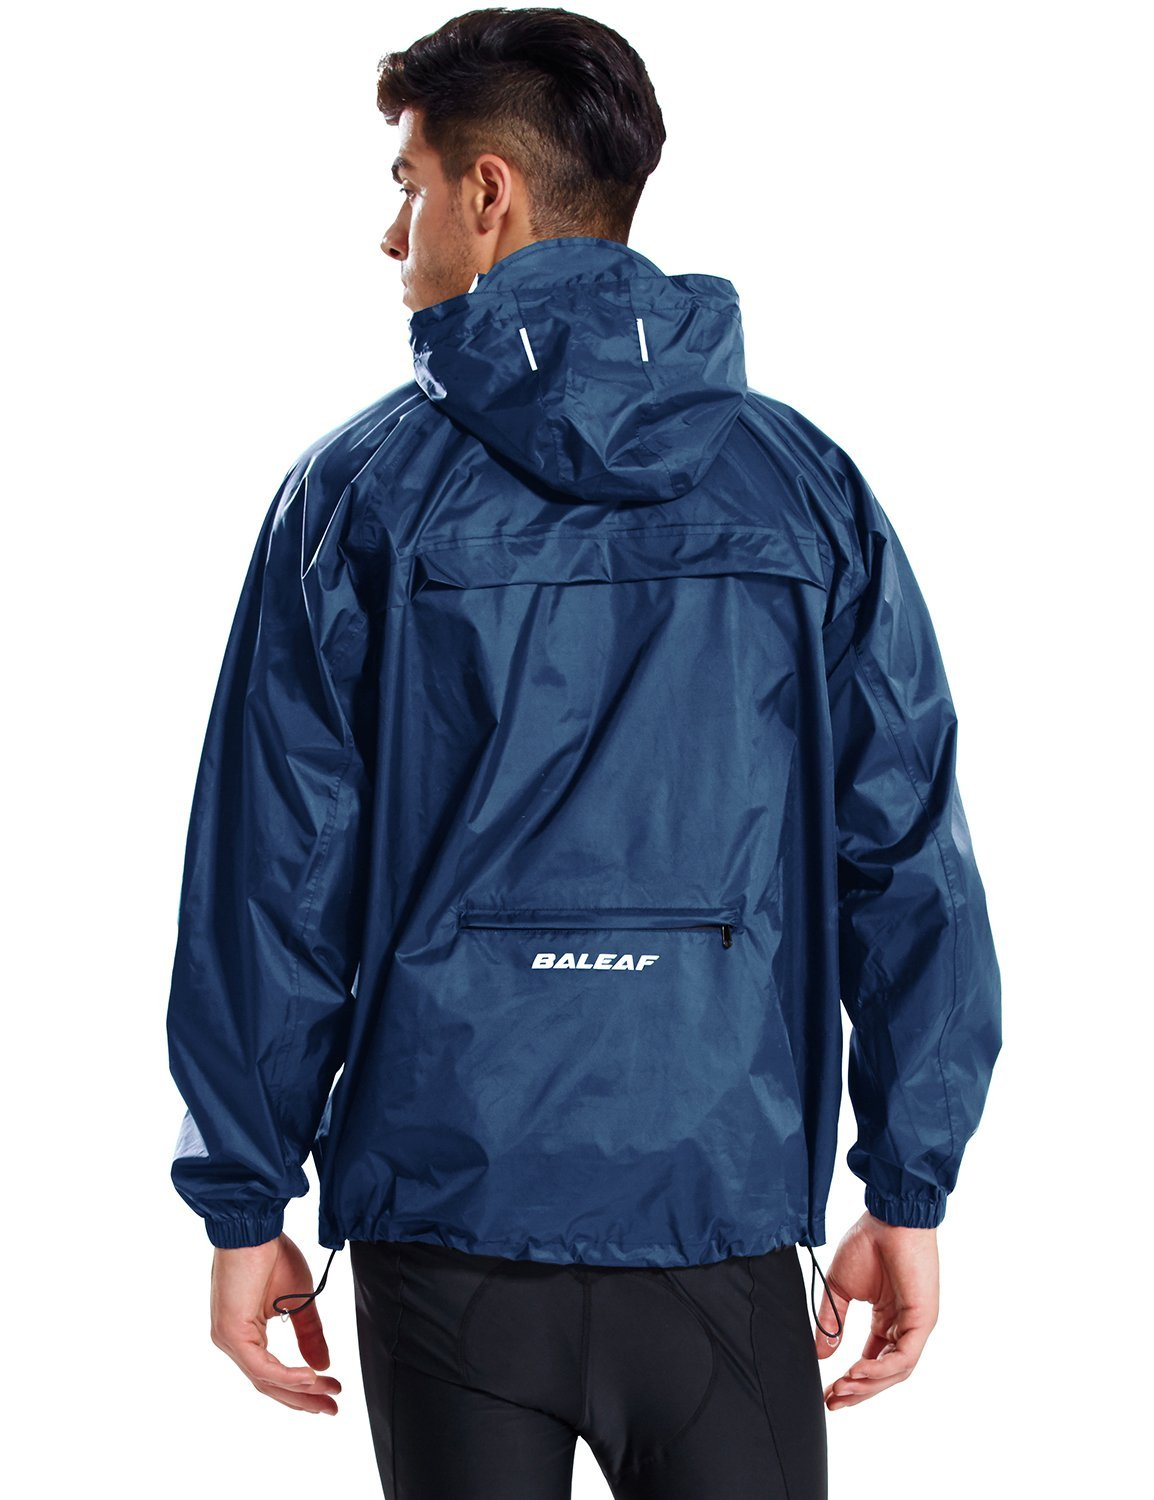 Baleaf Unisex Rain Jacket Packable Outdoor Waterproof Hooded Pullover Raincoat Poncho Navy Size L by Baleaf